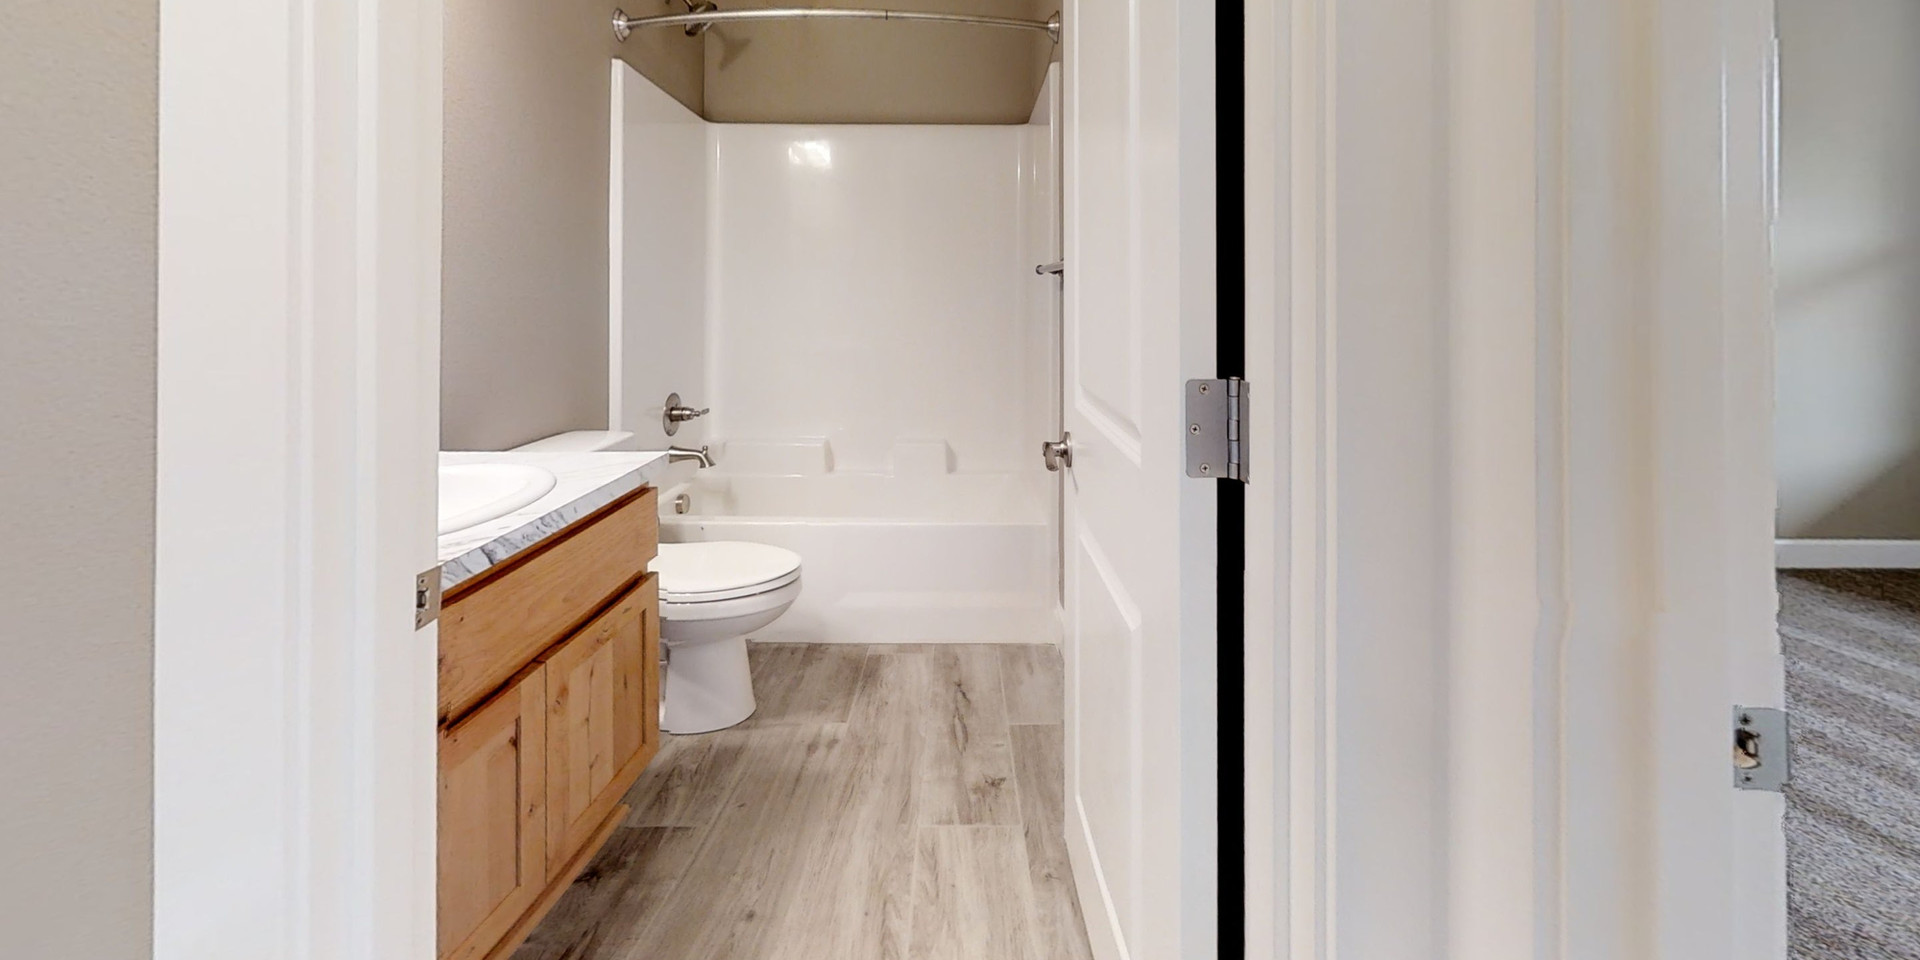 HuppZk45Fa4-Bathroom.jpg